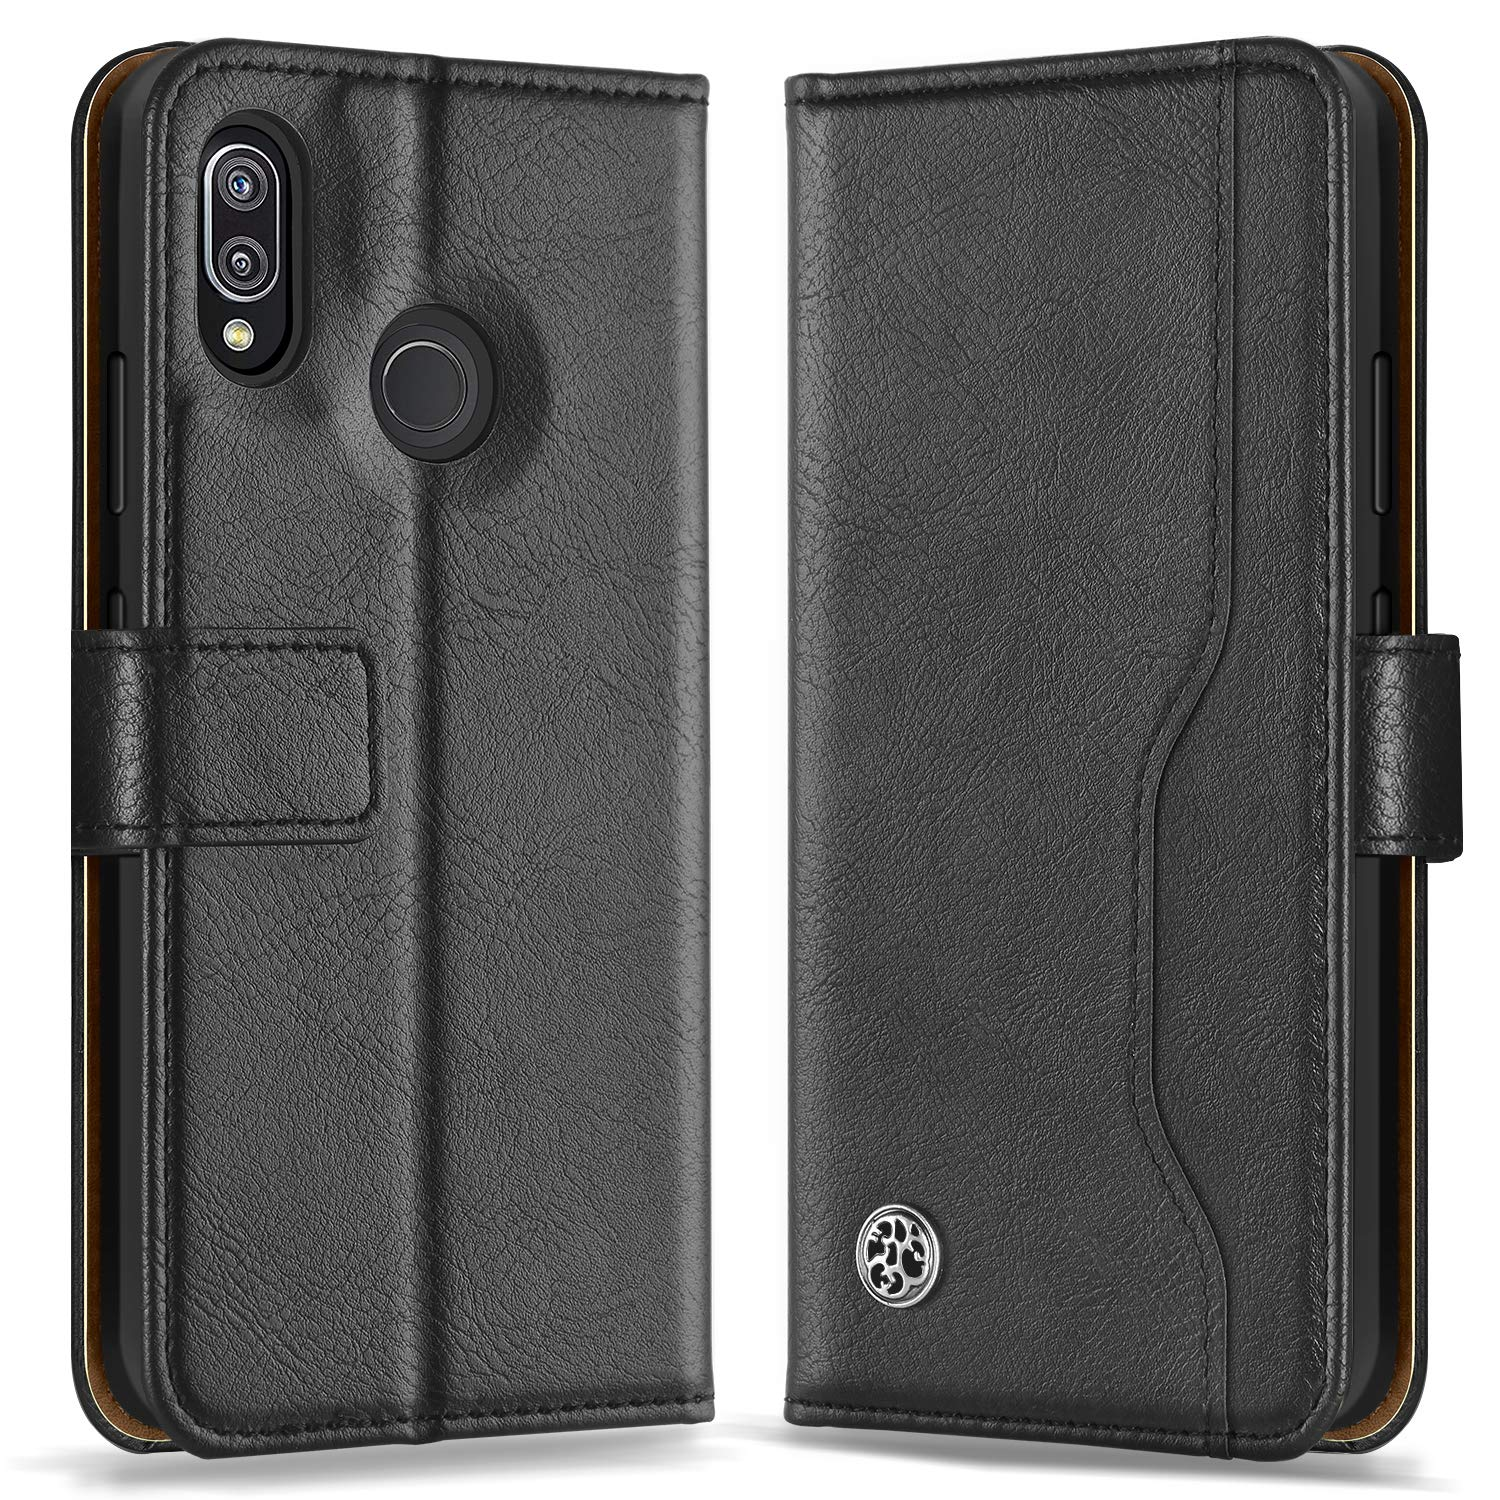 meet 72b9b a1b30 ykooe Huawei P20 Lite Case, Leather Flip P20 Lite Phone Case Wallet  Protective Cover for Huawei P20 Lite (Black)